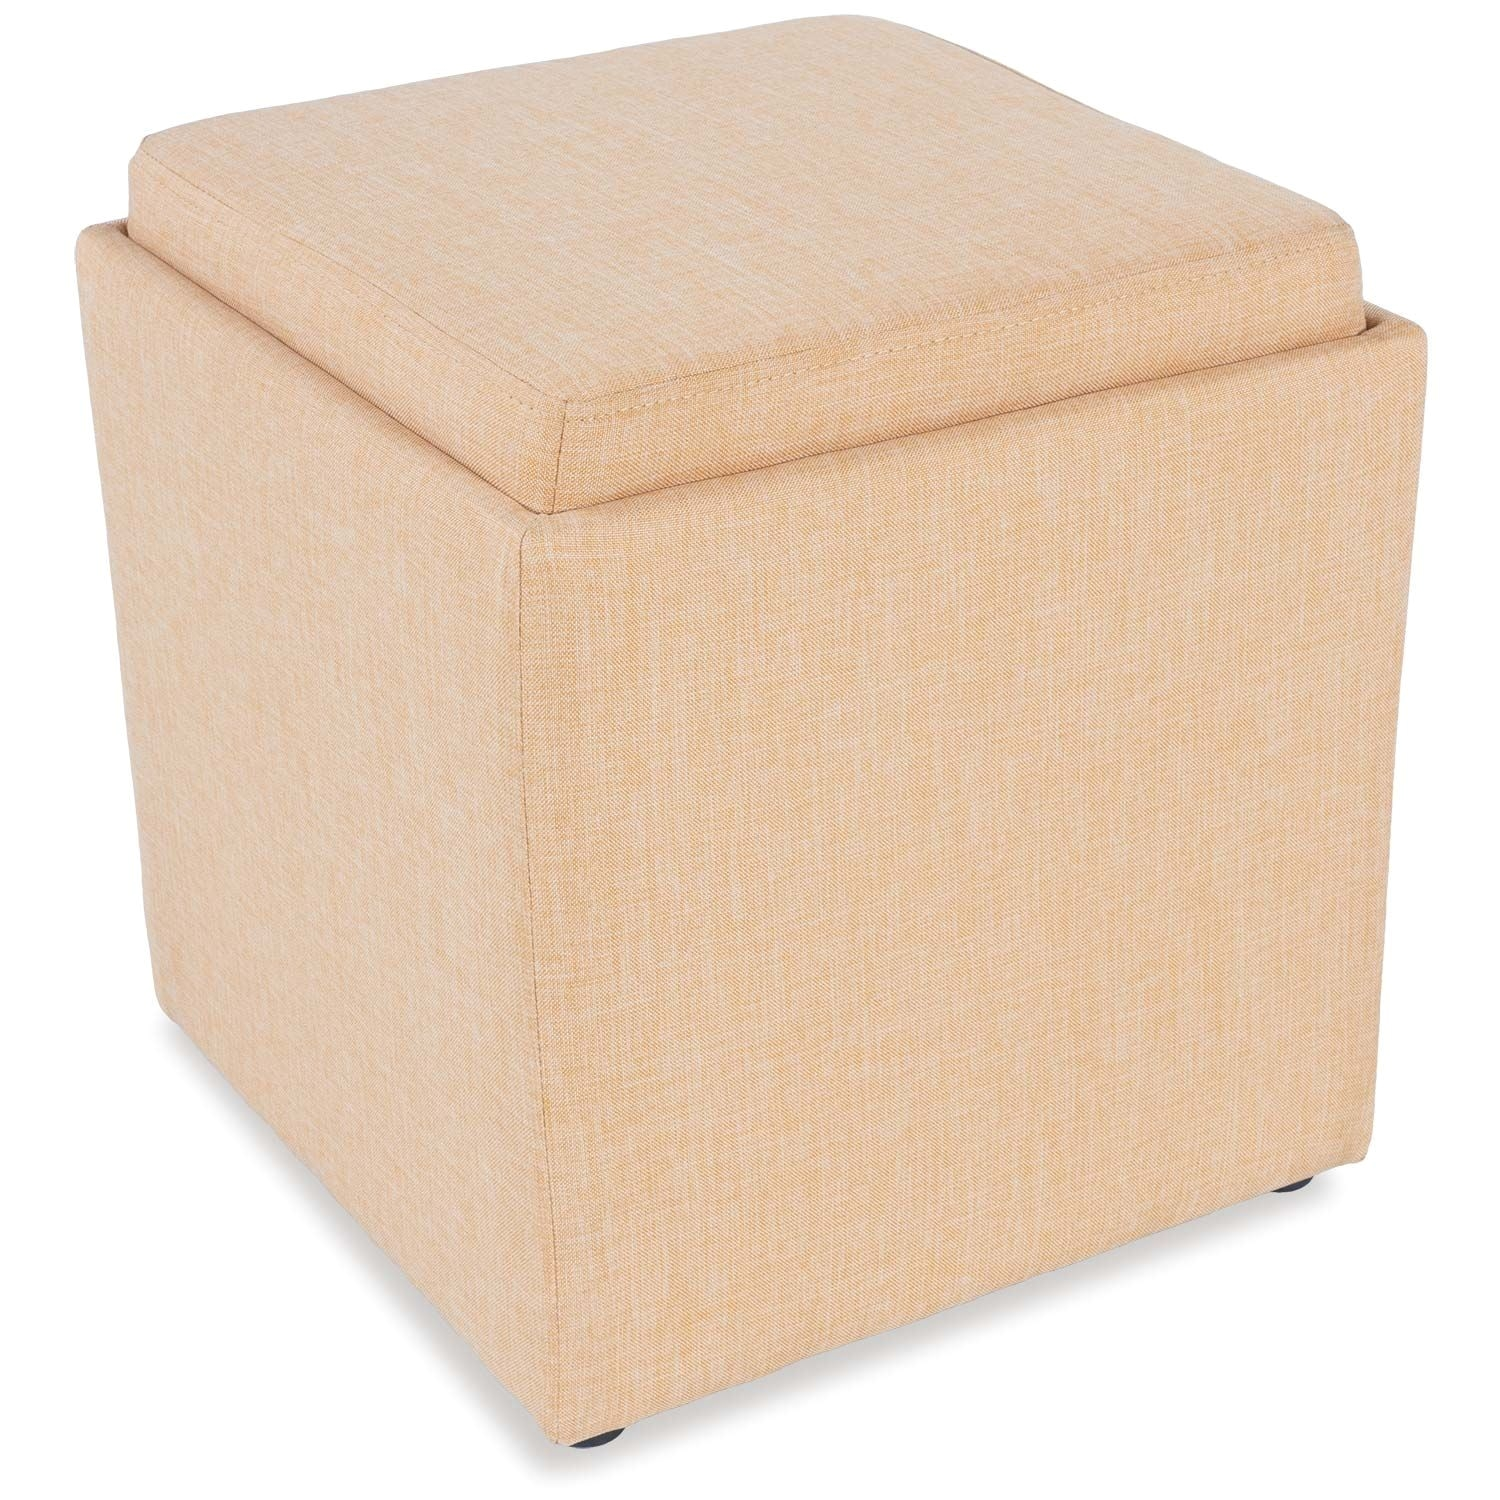 with the blocks storage ottoman from jgw furniture you can add a splash of color